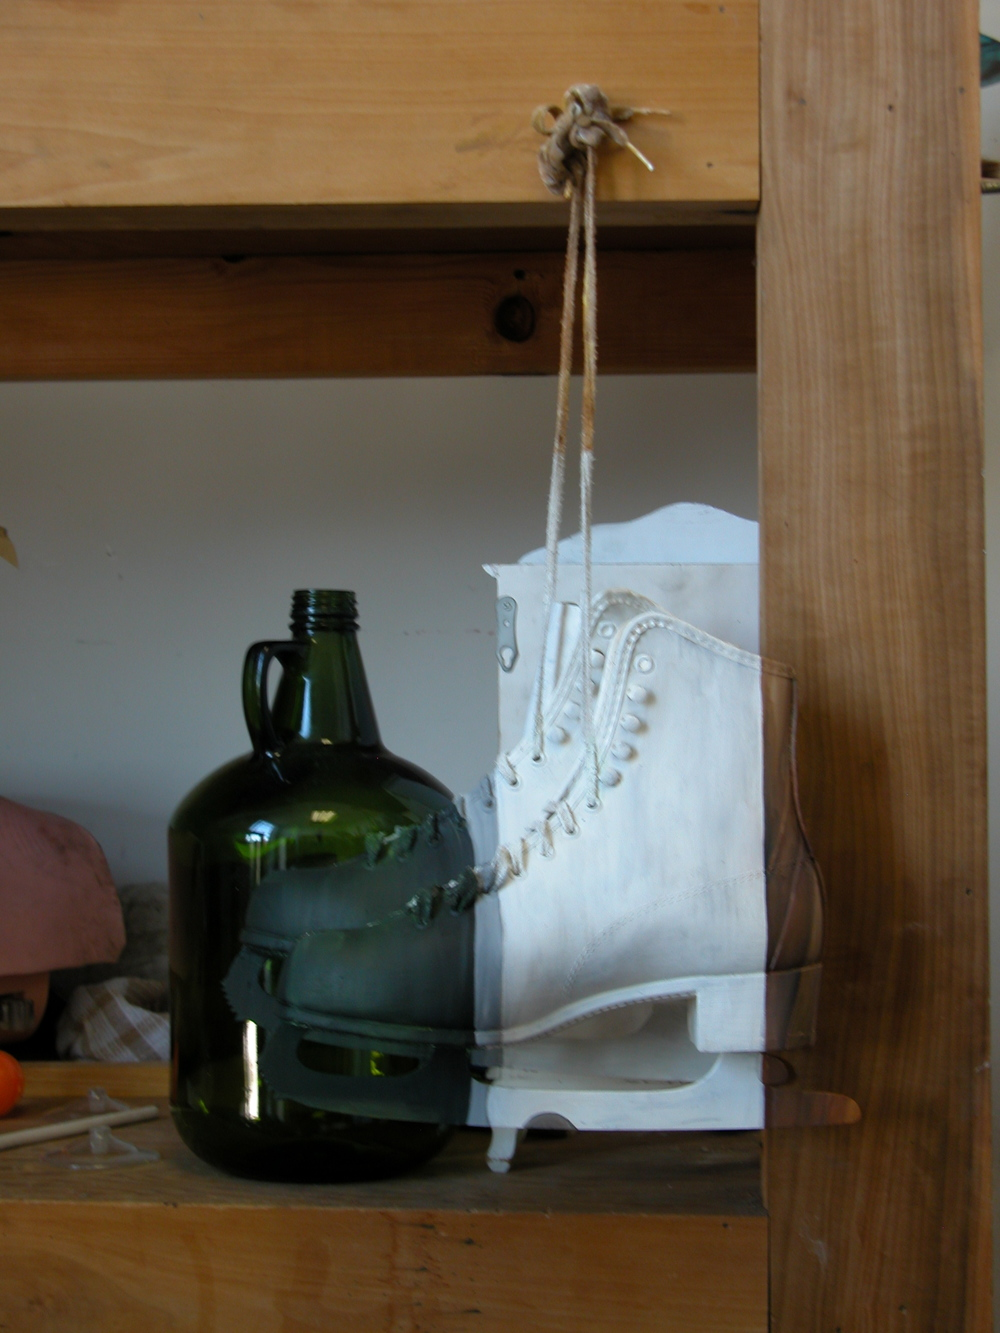 7. Pair of Ice Skates as Still Life Supply Shelf